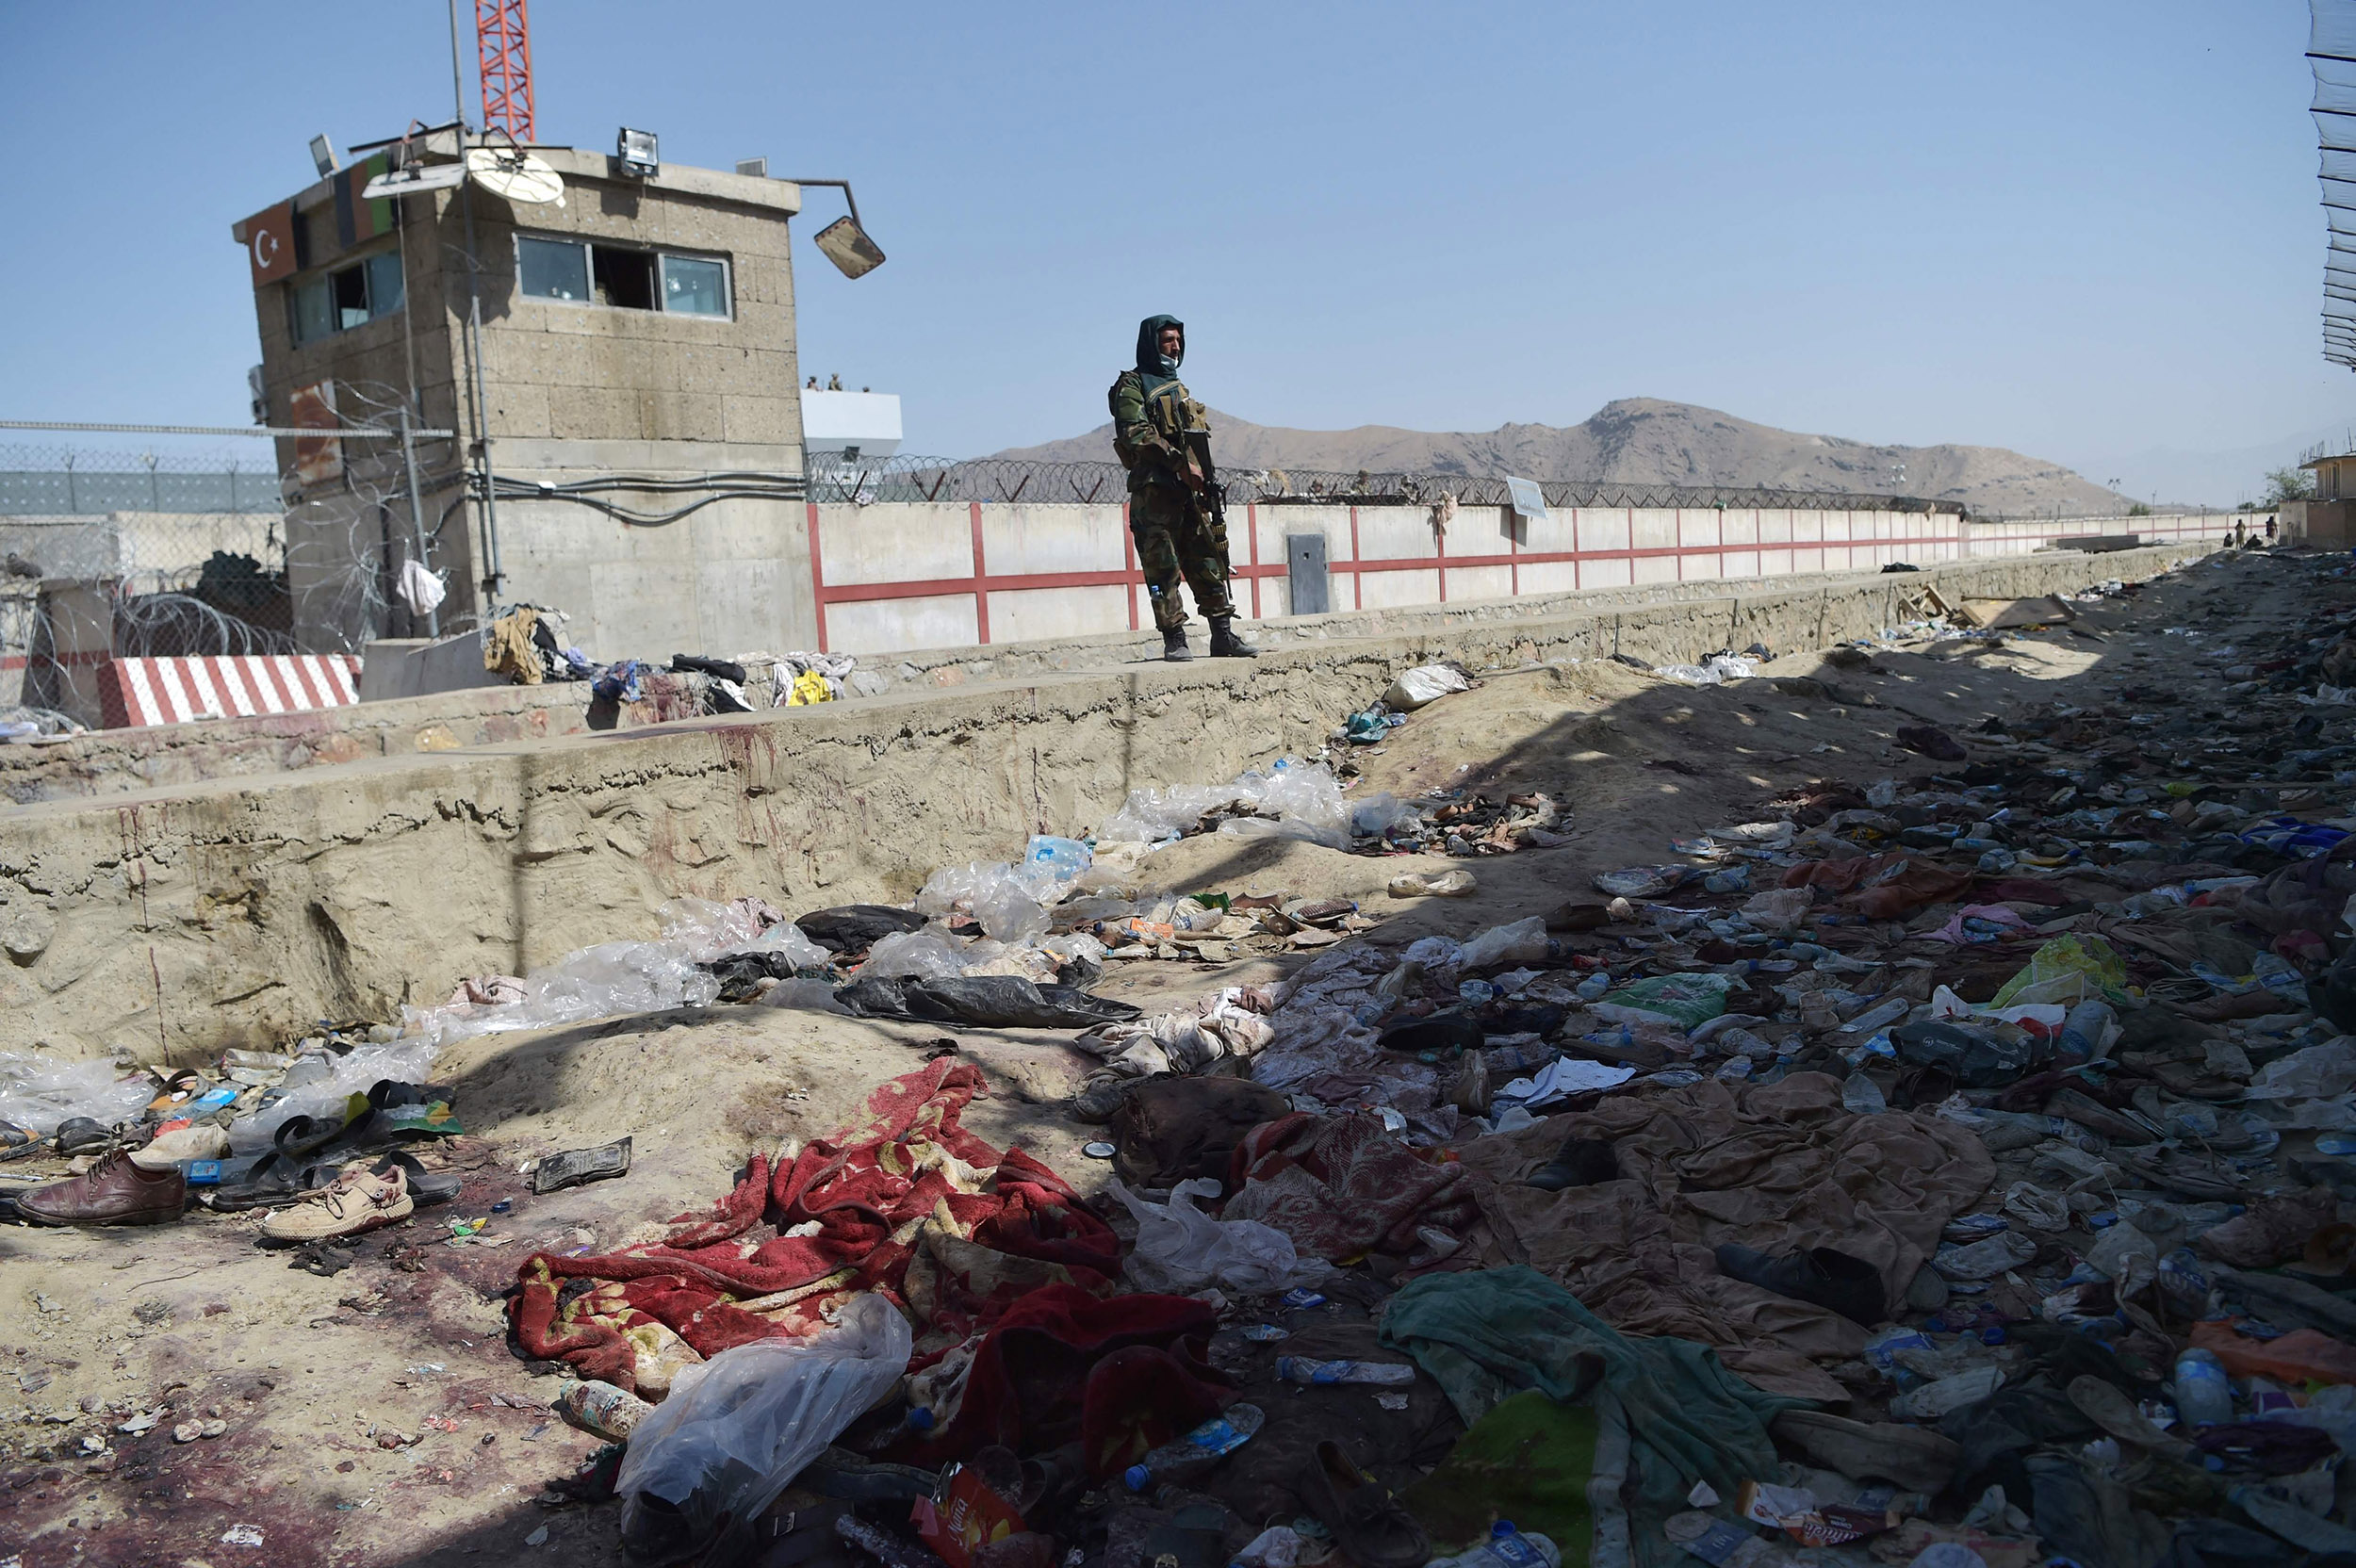 Evacuations resume, Afghans return to Kabul airport despite fears of more ISIS attacks